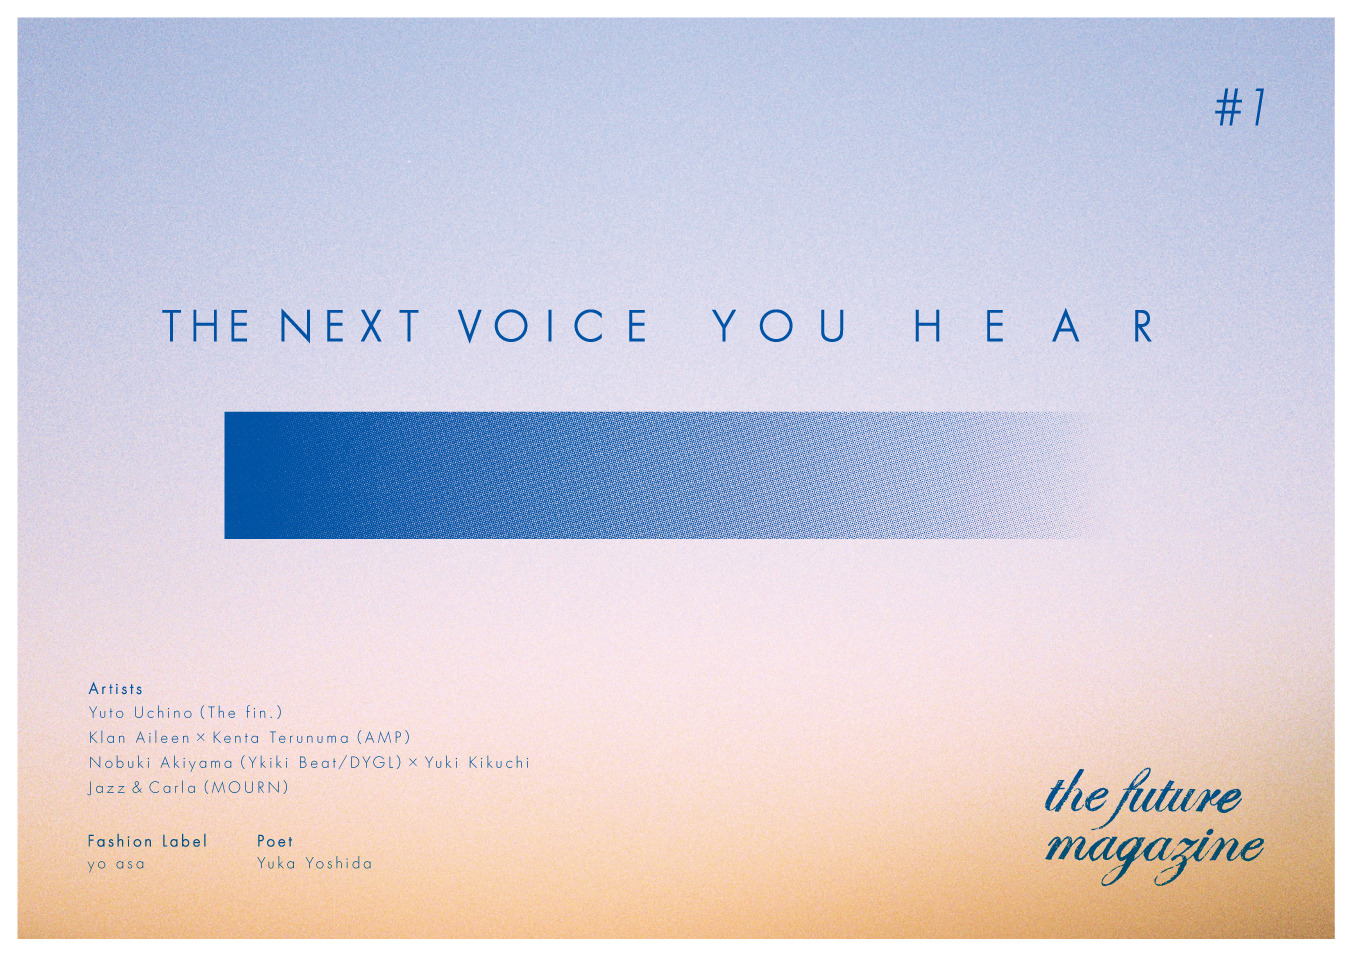 THE NEXT VOICE YOU HEAR